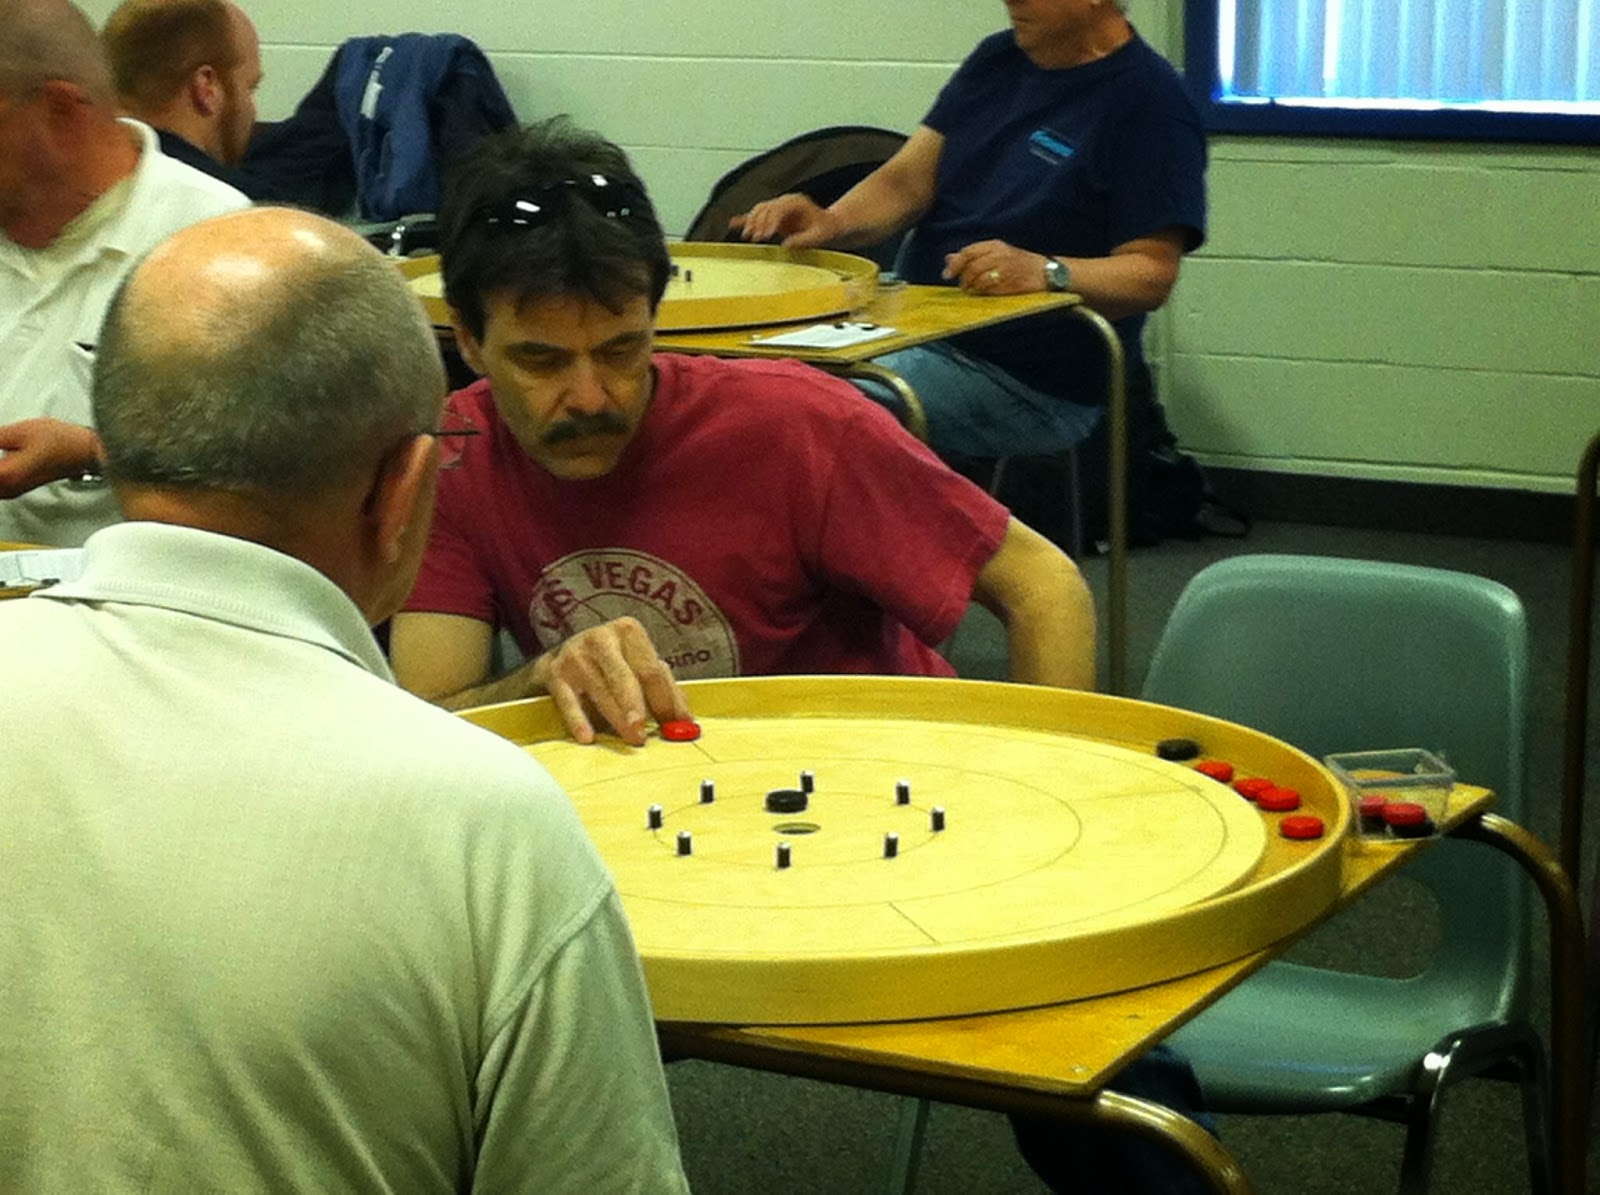 Roger Vaillancourt leans to set up for a shot during first round action at the 2014 Ontario Singles Crokinole Championship.